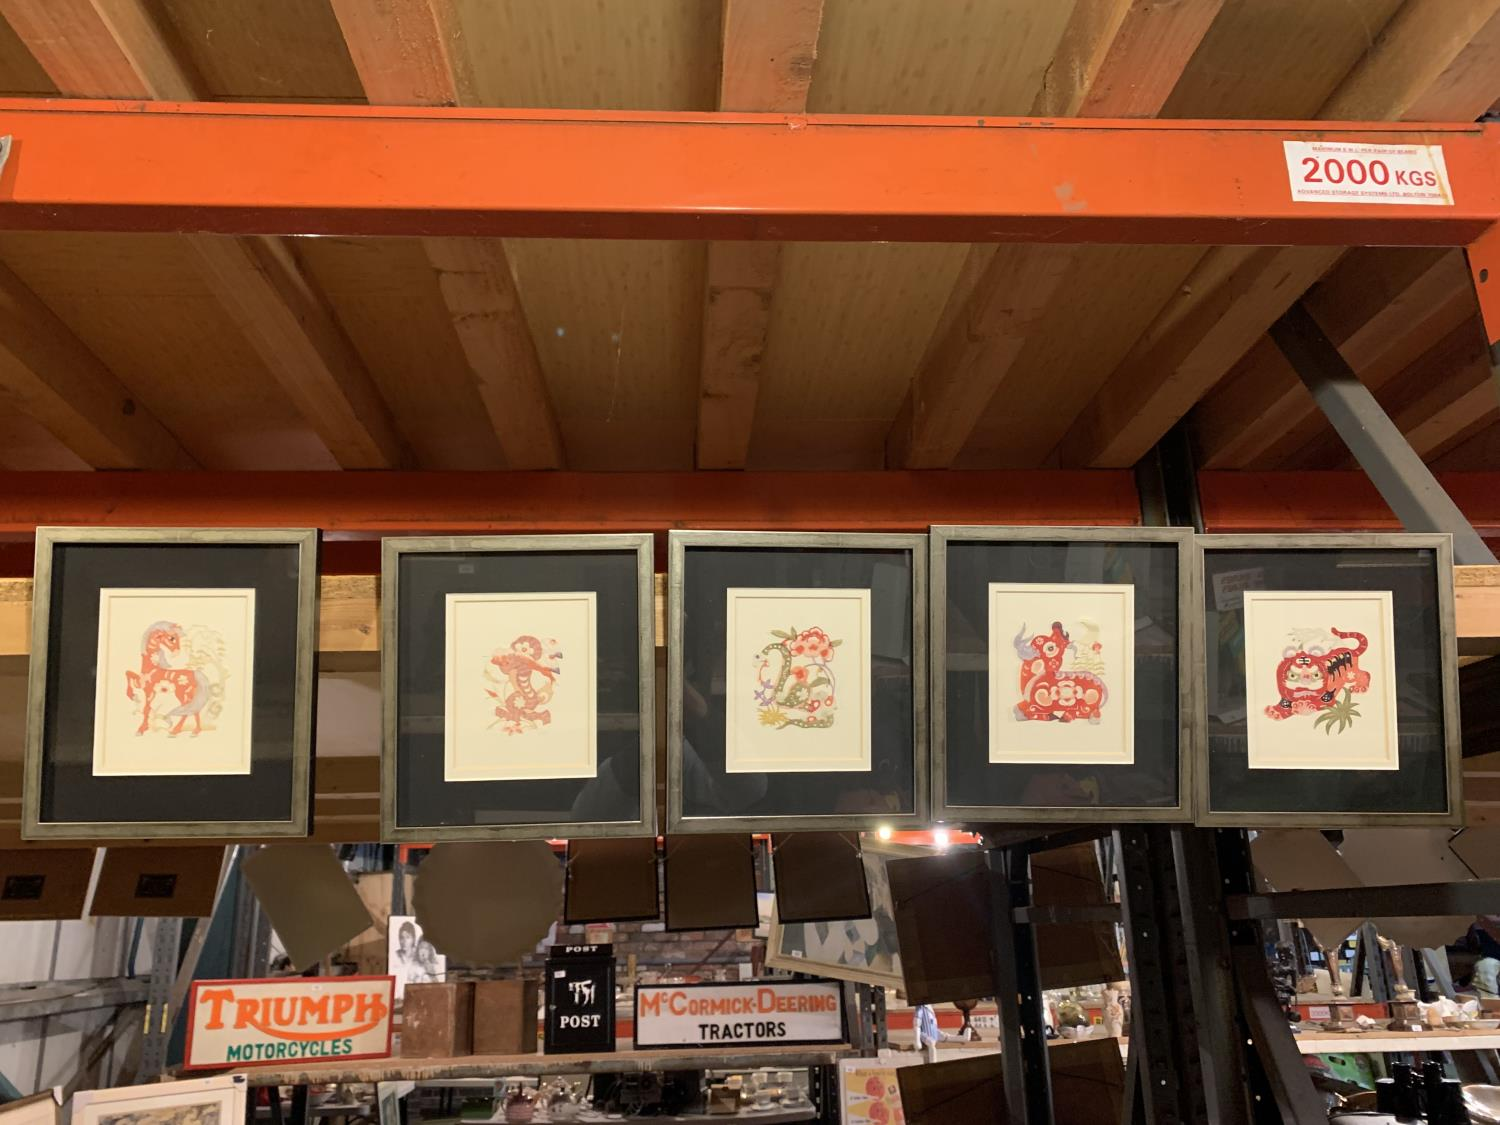 FIVE COLLAGE ORIENTAL STYLE INSPIRED FRAMED PIECES OF ART